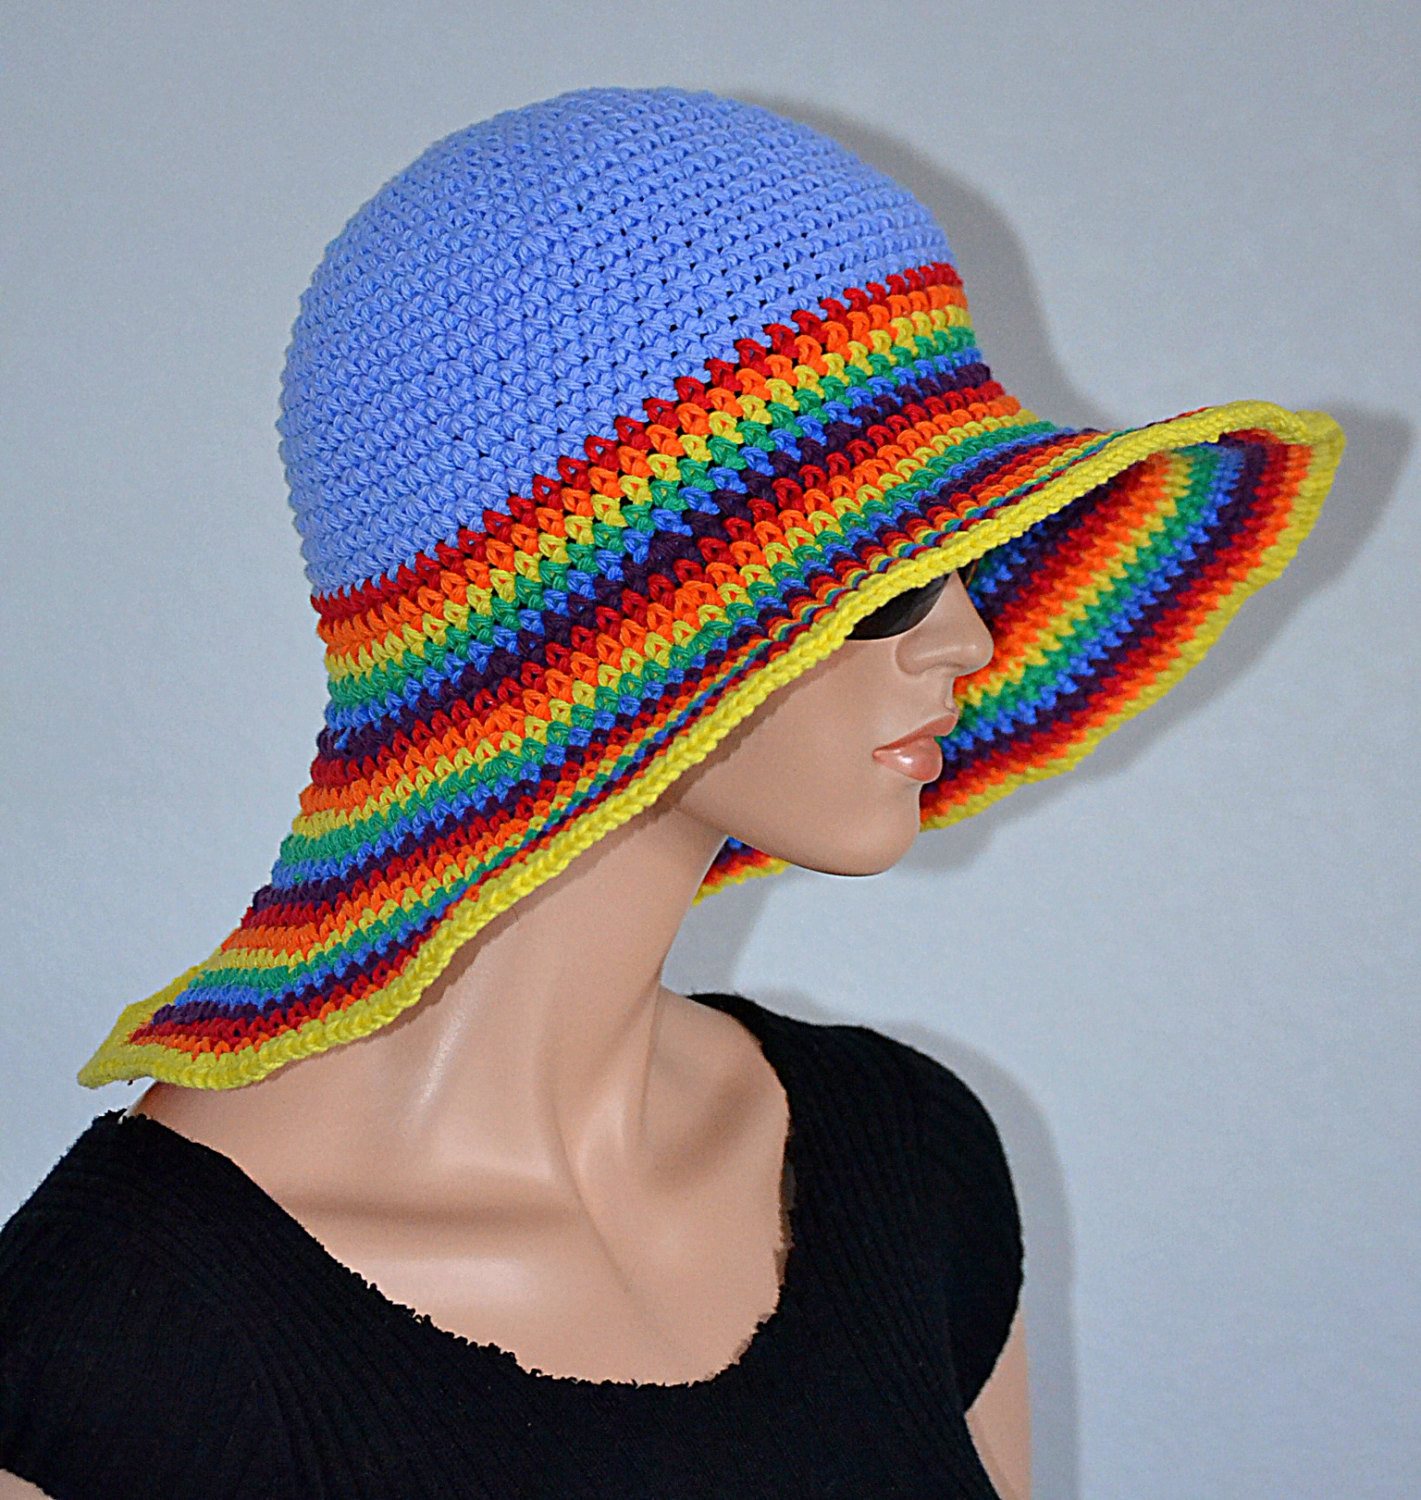 Best Of Crochet Summer Hat Handmade Sun Hat Cotton Beach Hat Crochet Summer Hat Of Awesome 45 Images Crochet Summer Hat